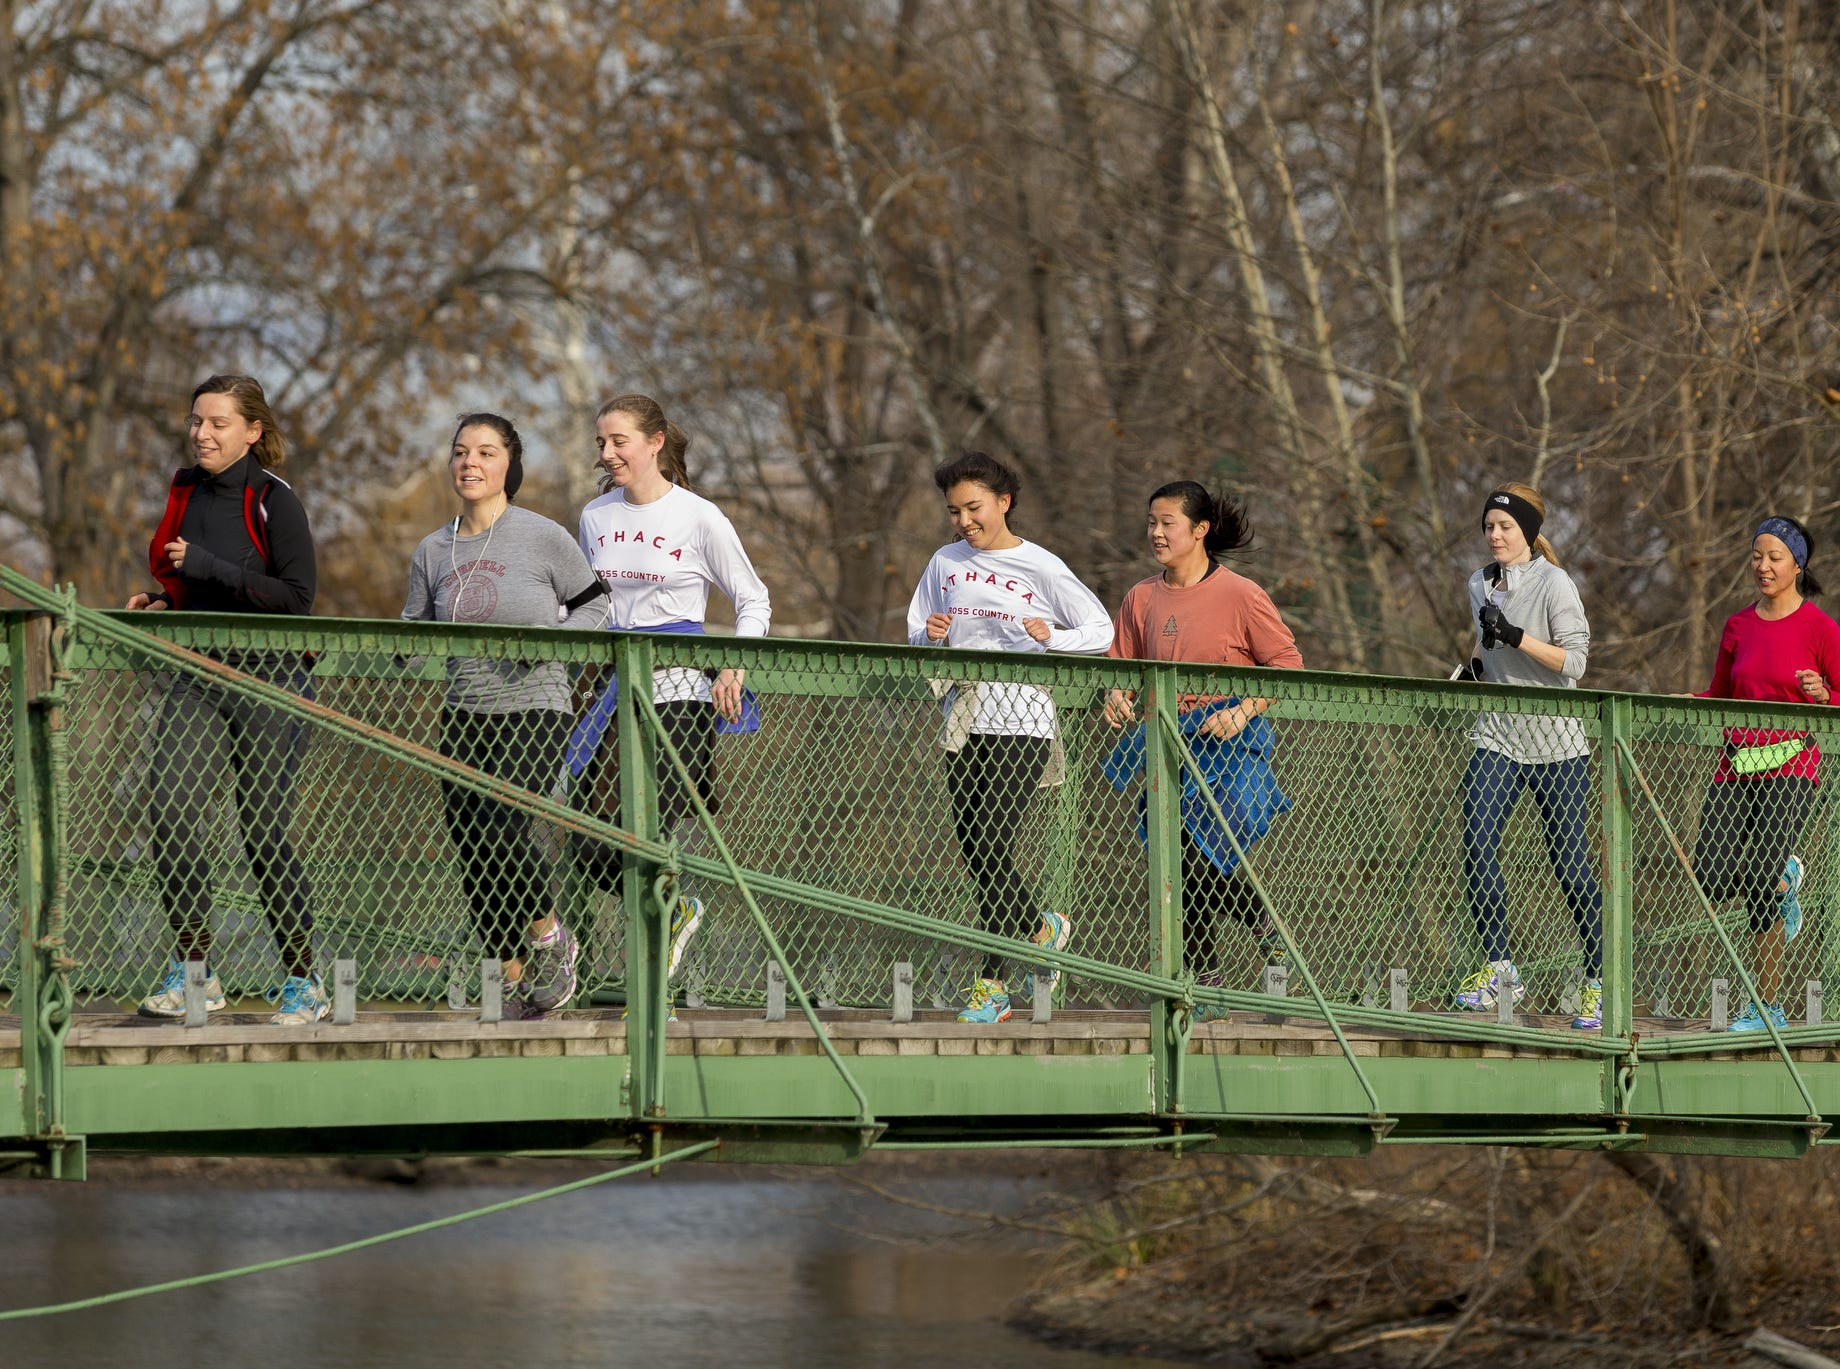 From 2015: Runners cross from the Fuertes Bird Sanctuary to Newman Golf Course on Thursday morning during the 43rd Annual Turkey Trot Prediction Run in Ithaca.